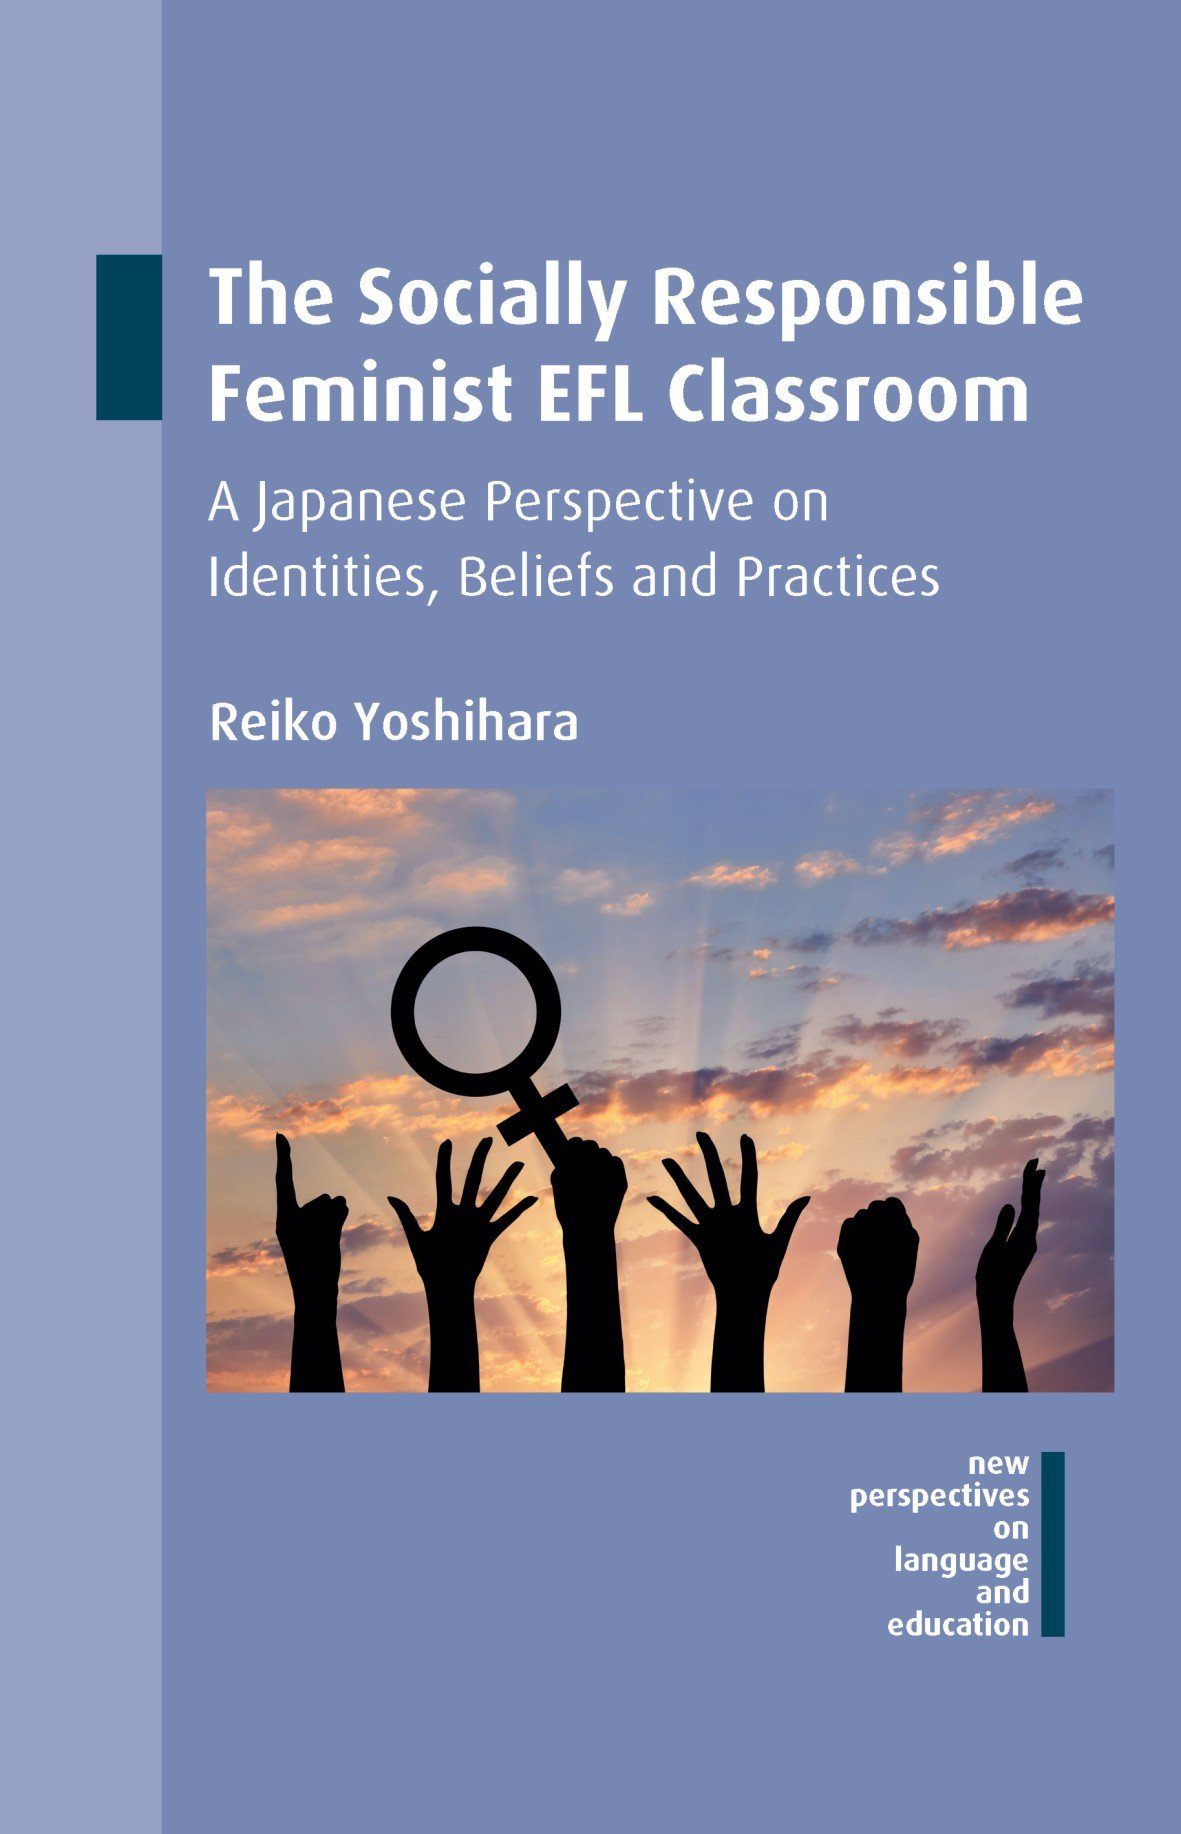 The Socially Responsible Feminist EFL Classroom: A Japanese Perspective on Identities, Beliefs and Practices (NEW PERSPECTIVES ON LANGUAGE AND EDUCATION) by Multilingual Matters